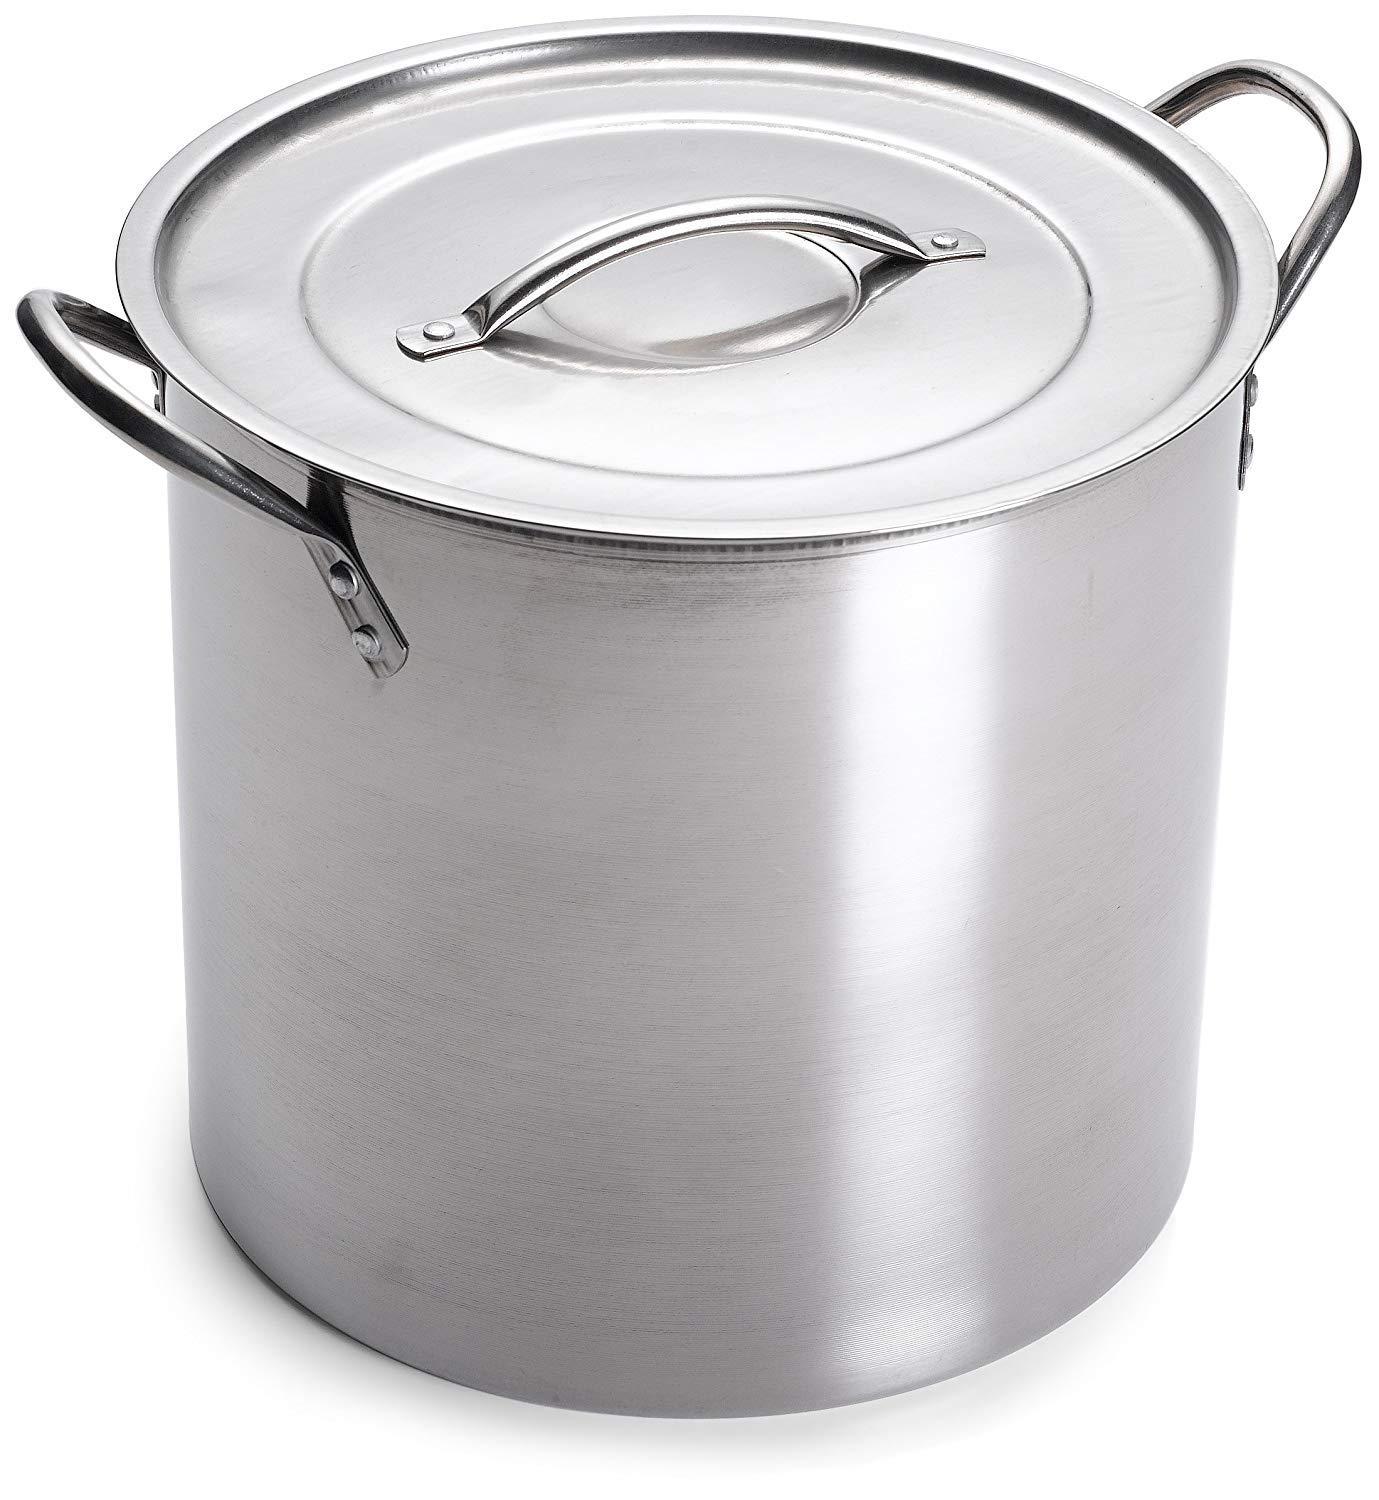 IMUSA USA L300-40317 Stainless Steel Stock Pot 20-Quart, Silver by Imusa